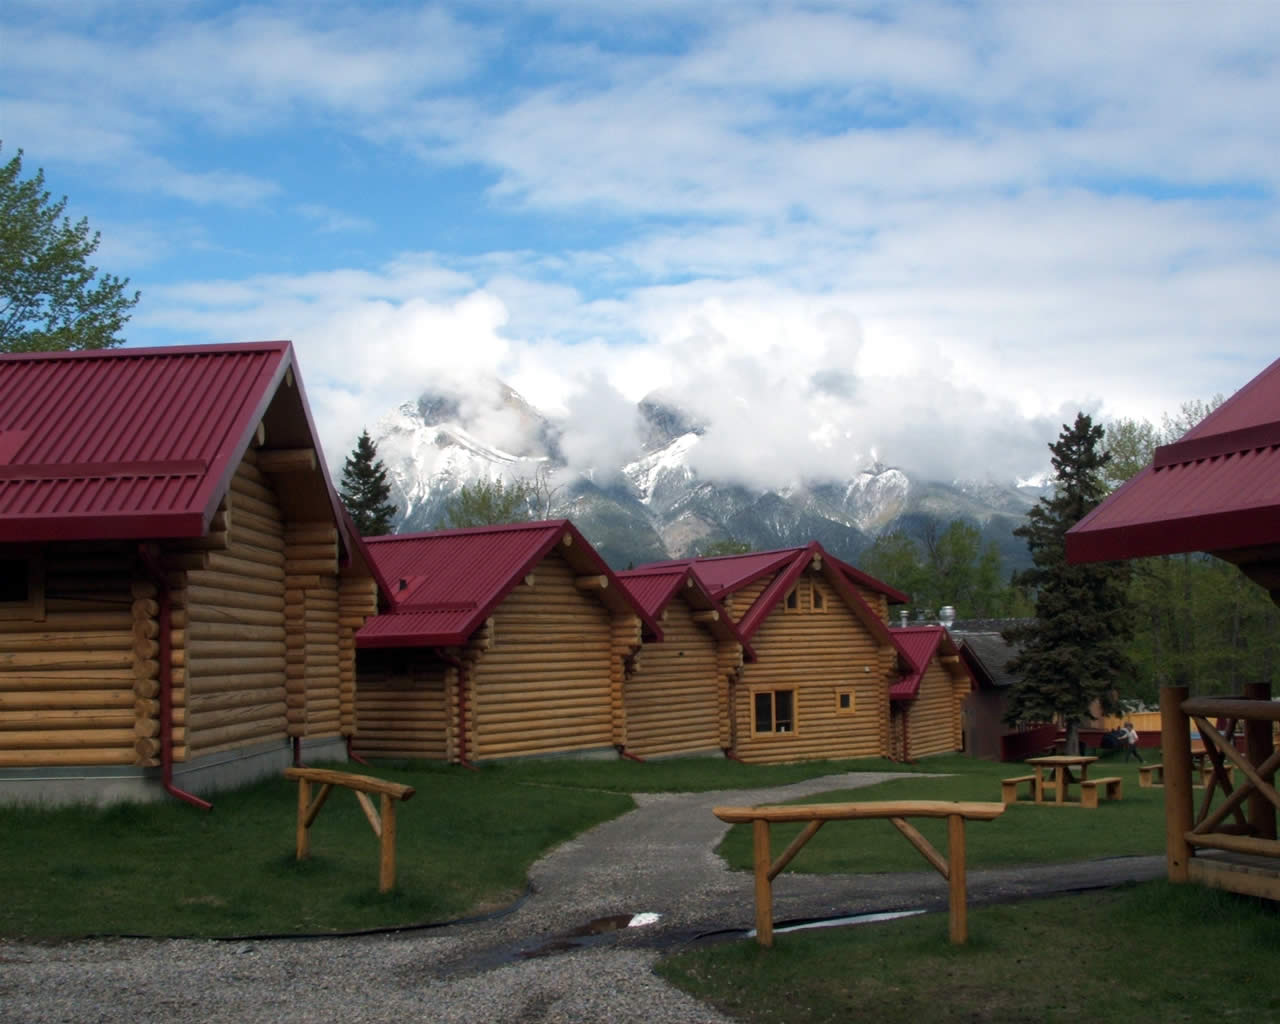 Bosche Range In Clouds As Seen From Pocahontas Cabins, Jasper National  Park, Alberta